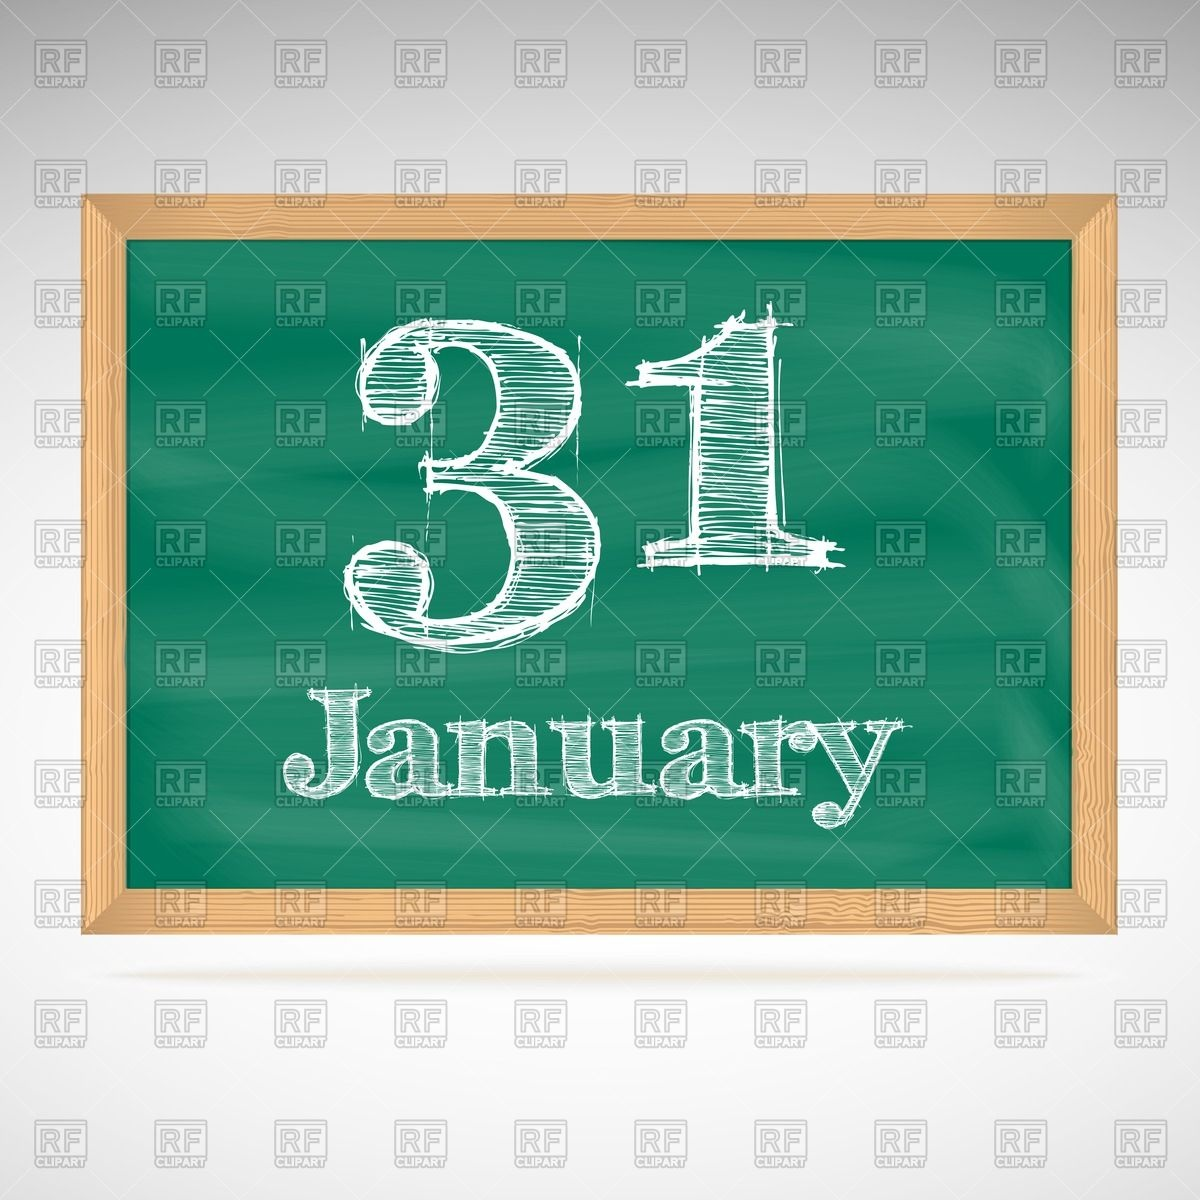 January 31 calendar clipart png royalty free library School chalkboard calendar with inscription in chalk January 31 ... png royalty free library